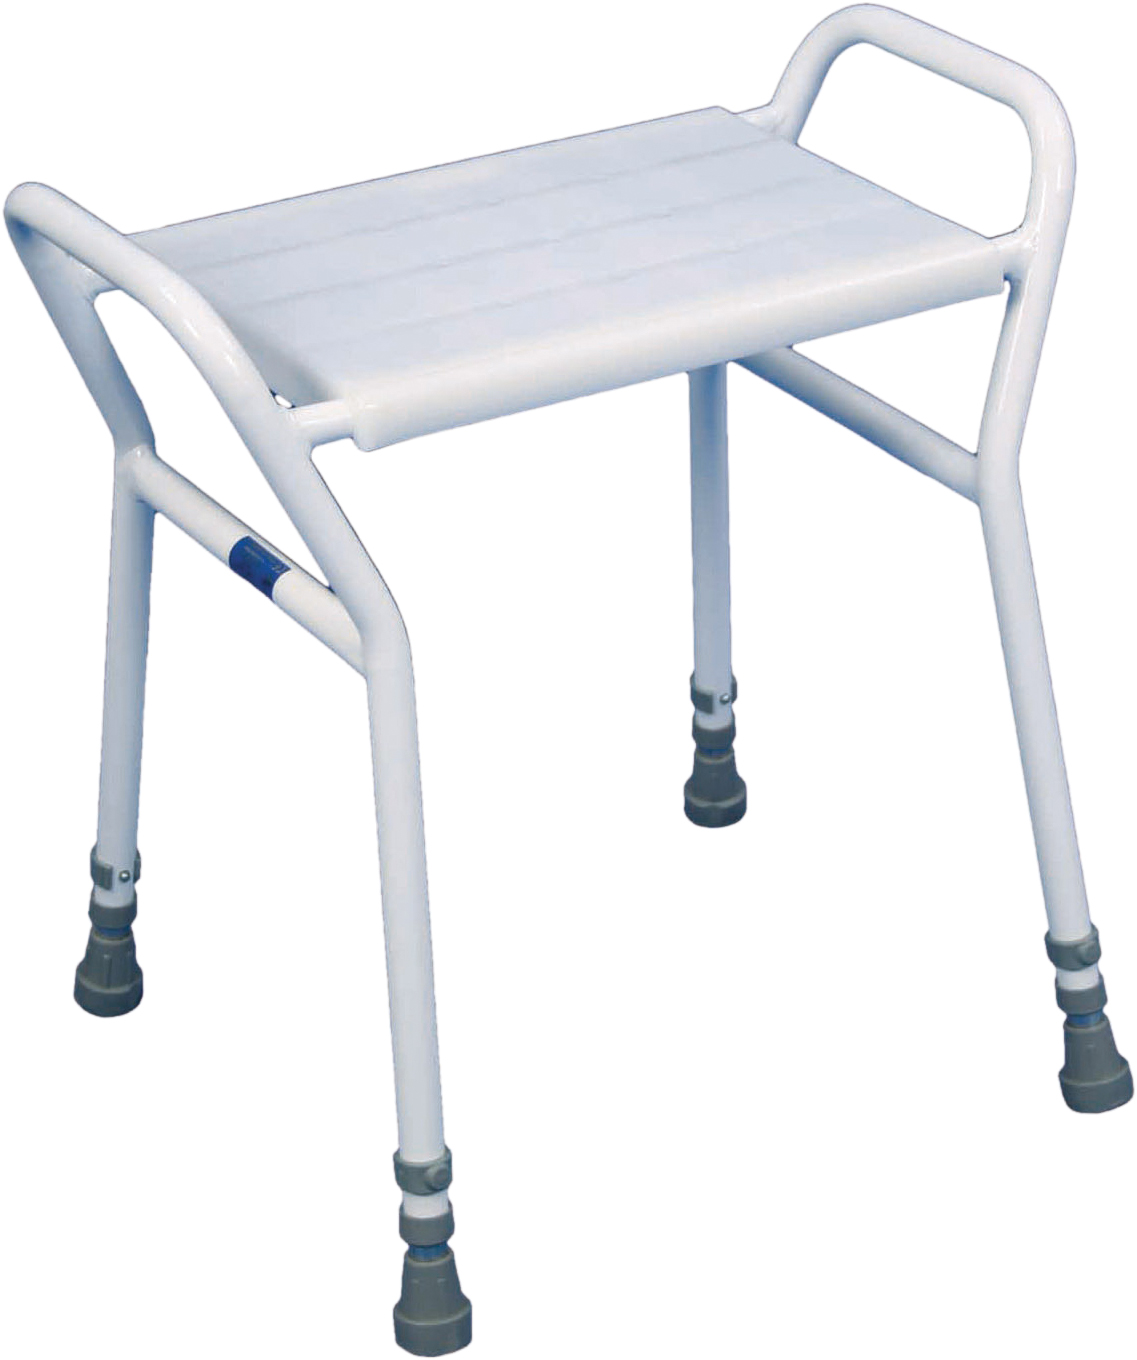 Strood Height Adjustable Shower Stool Aidapt Mobility Aids ...